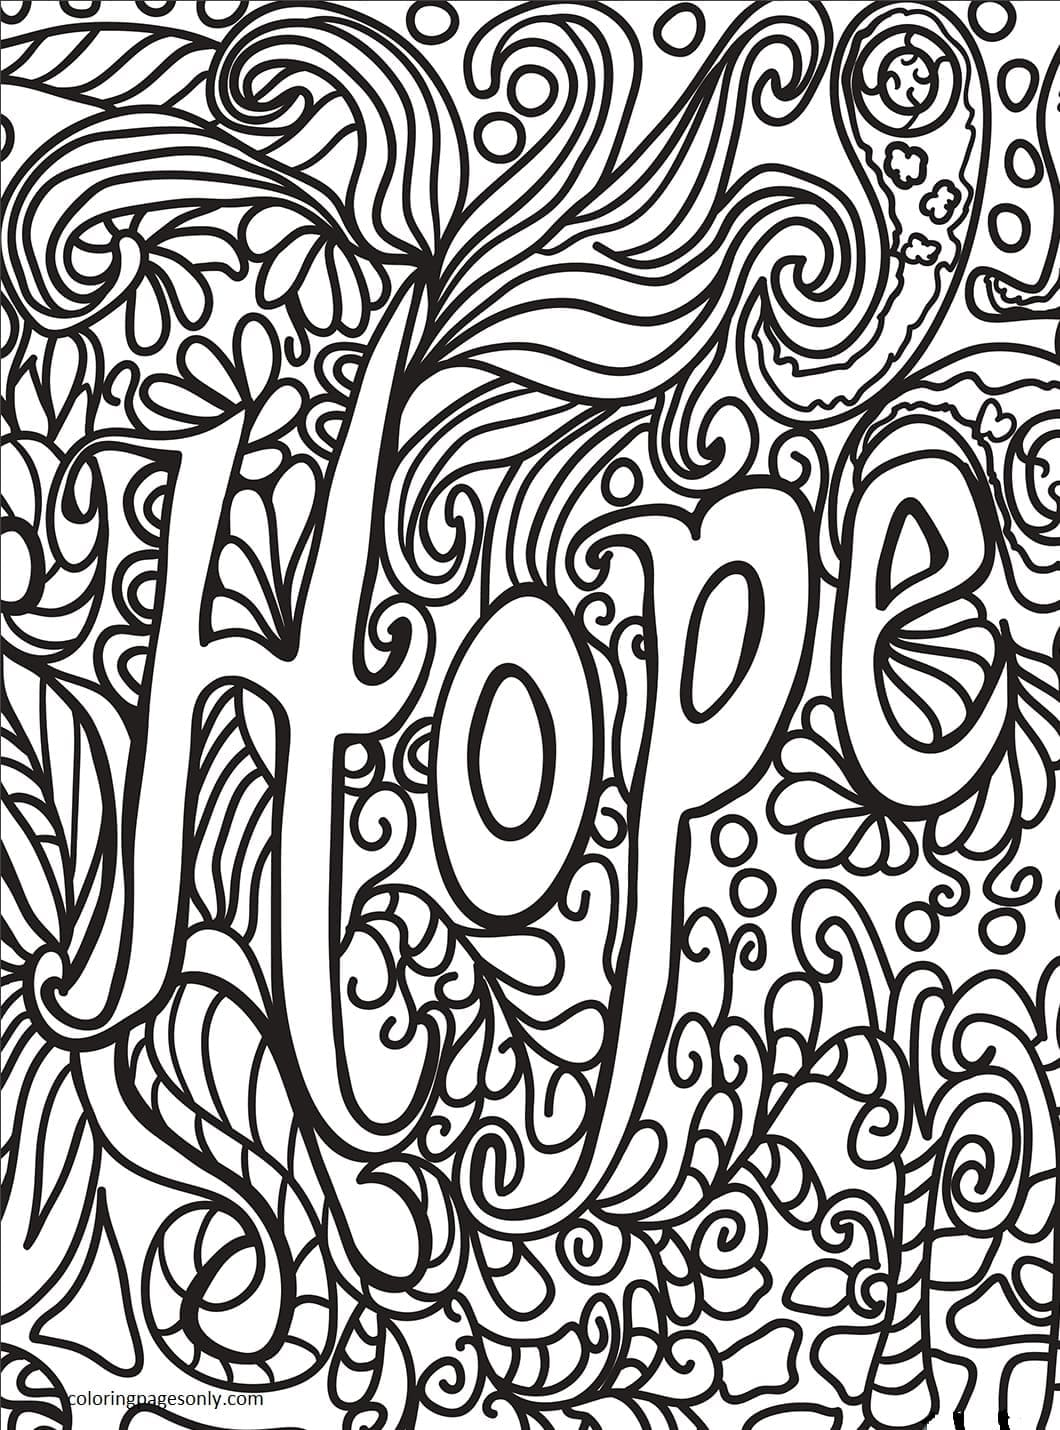 Hope Coloring Page